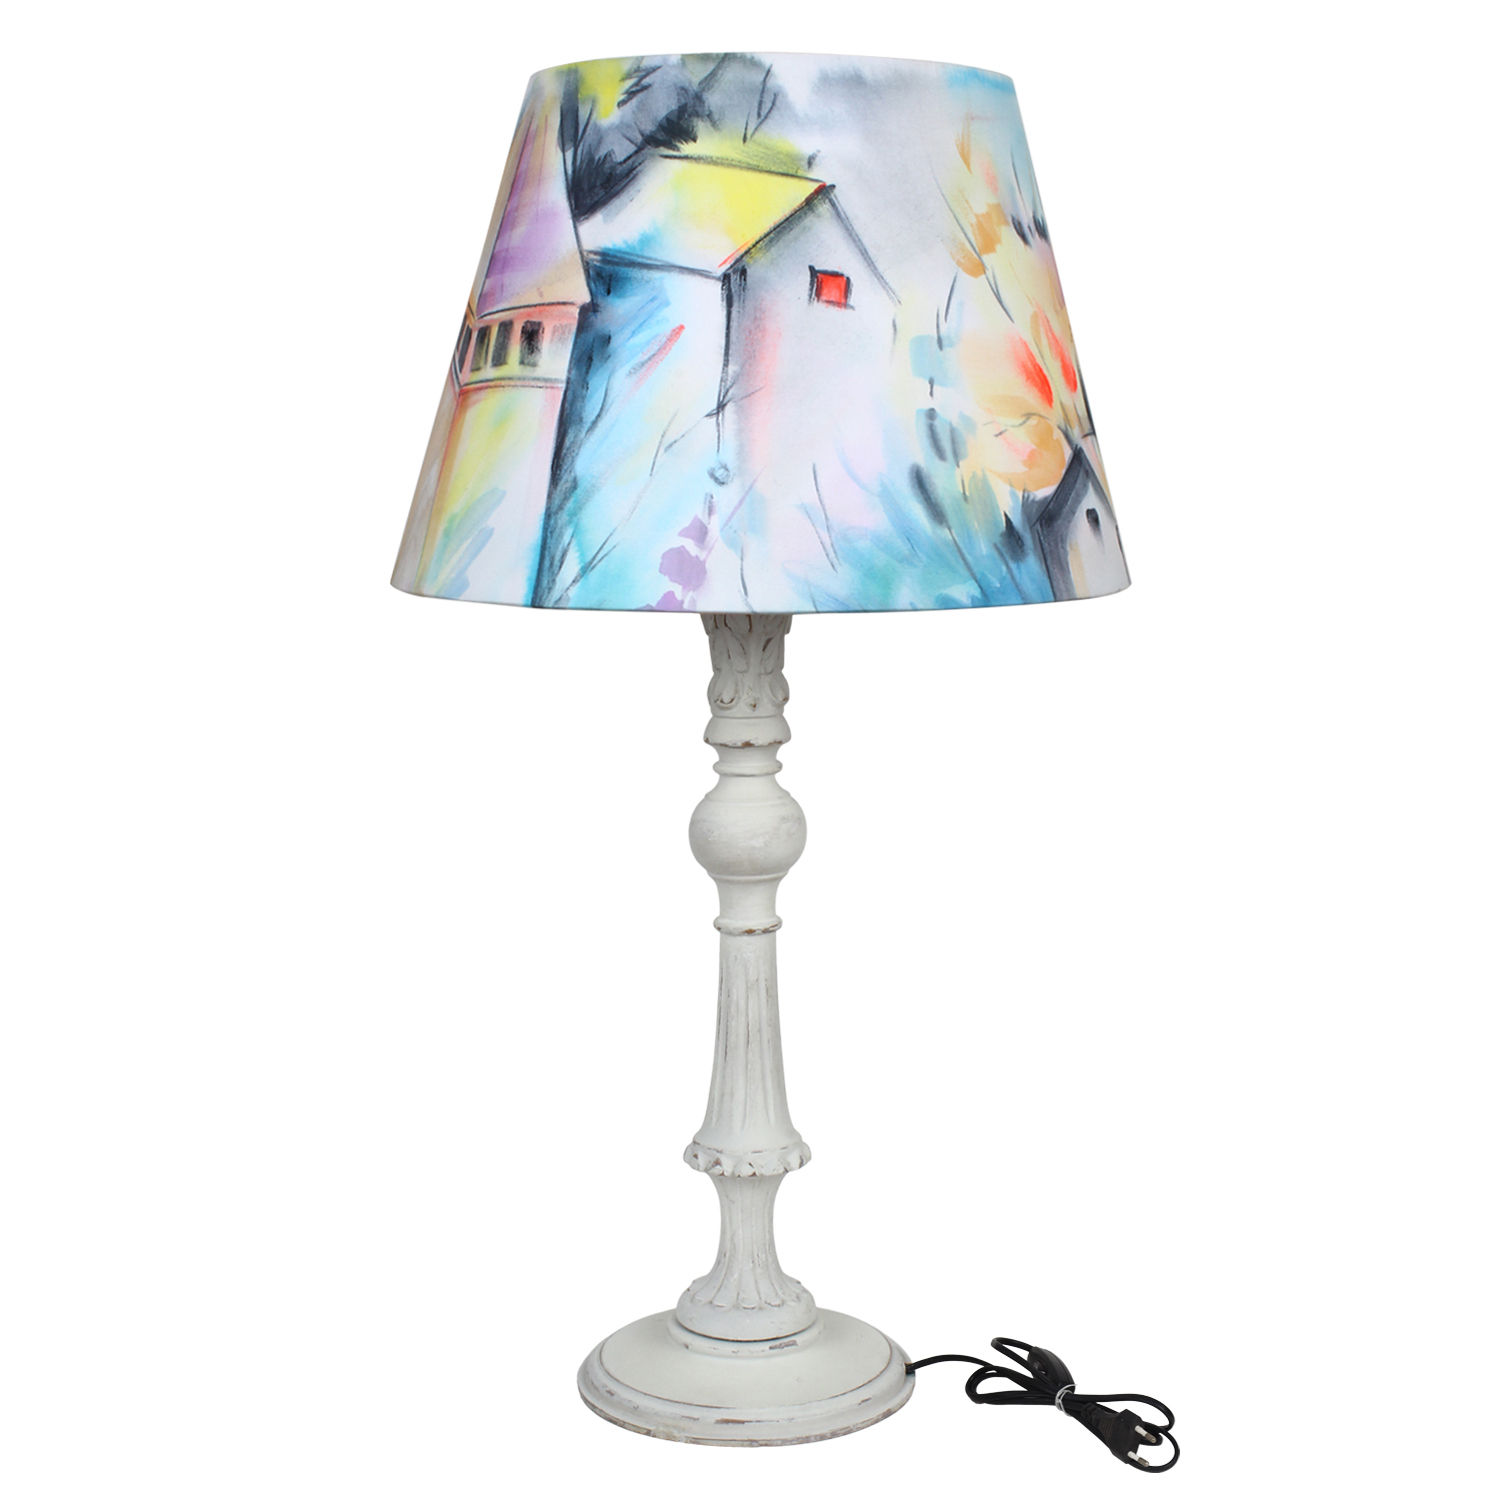 The decor mart the speaking windows hand painted lamp shade pack of 1 aloadofball Gallery